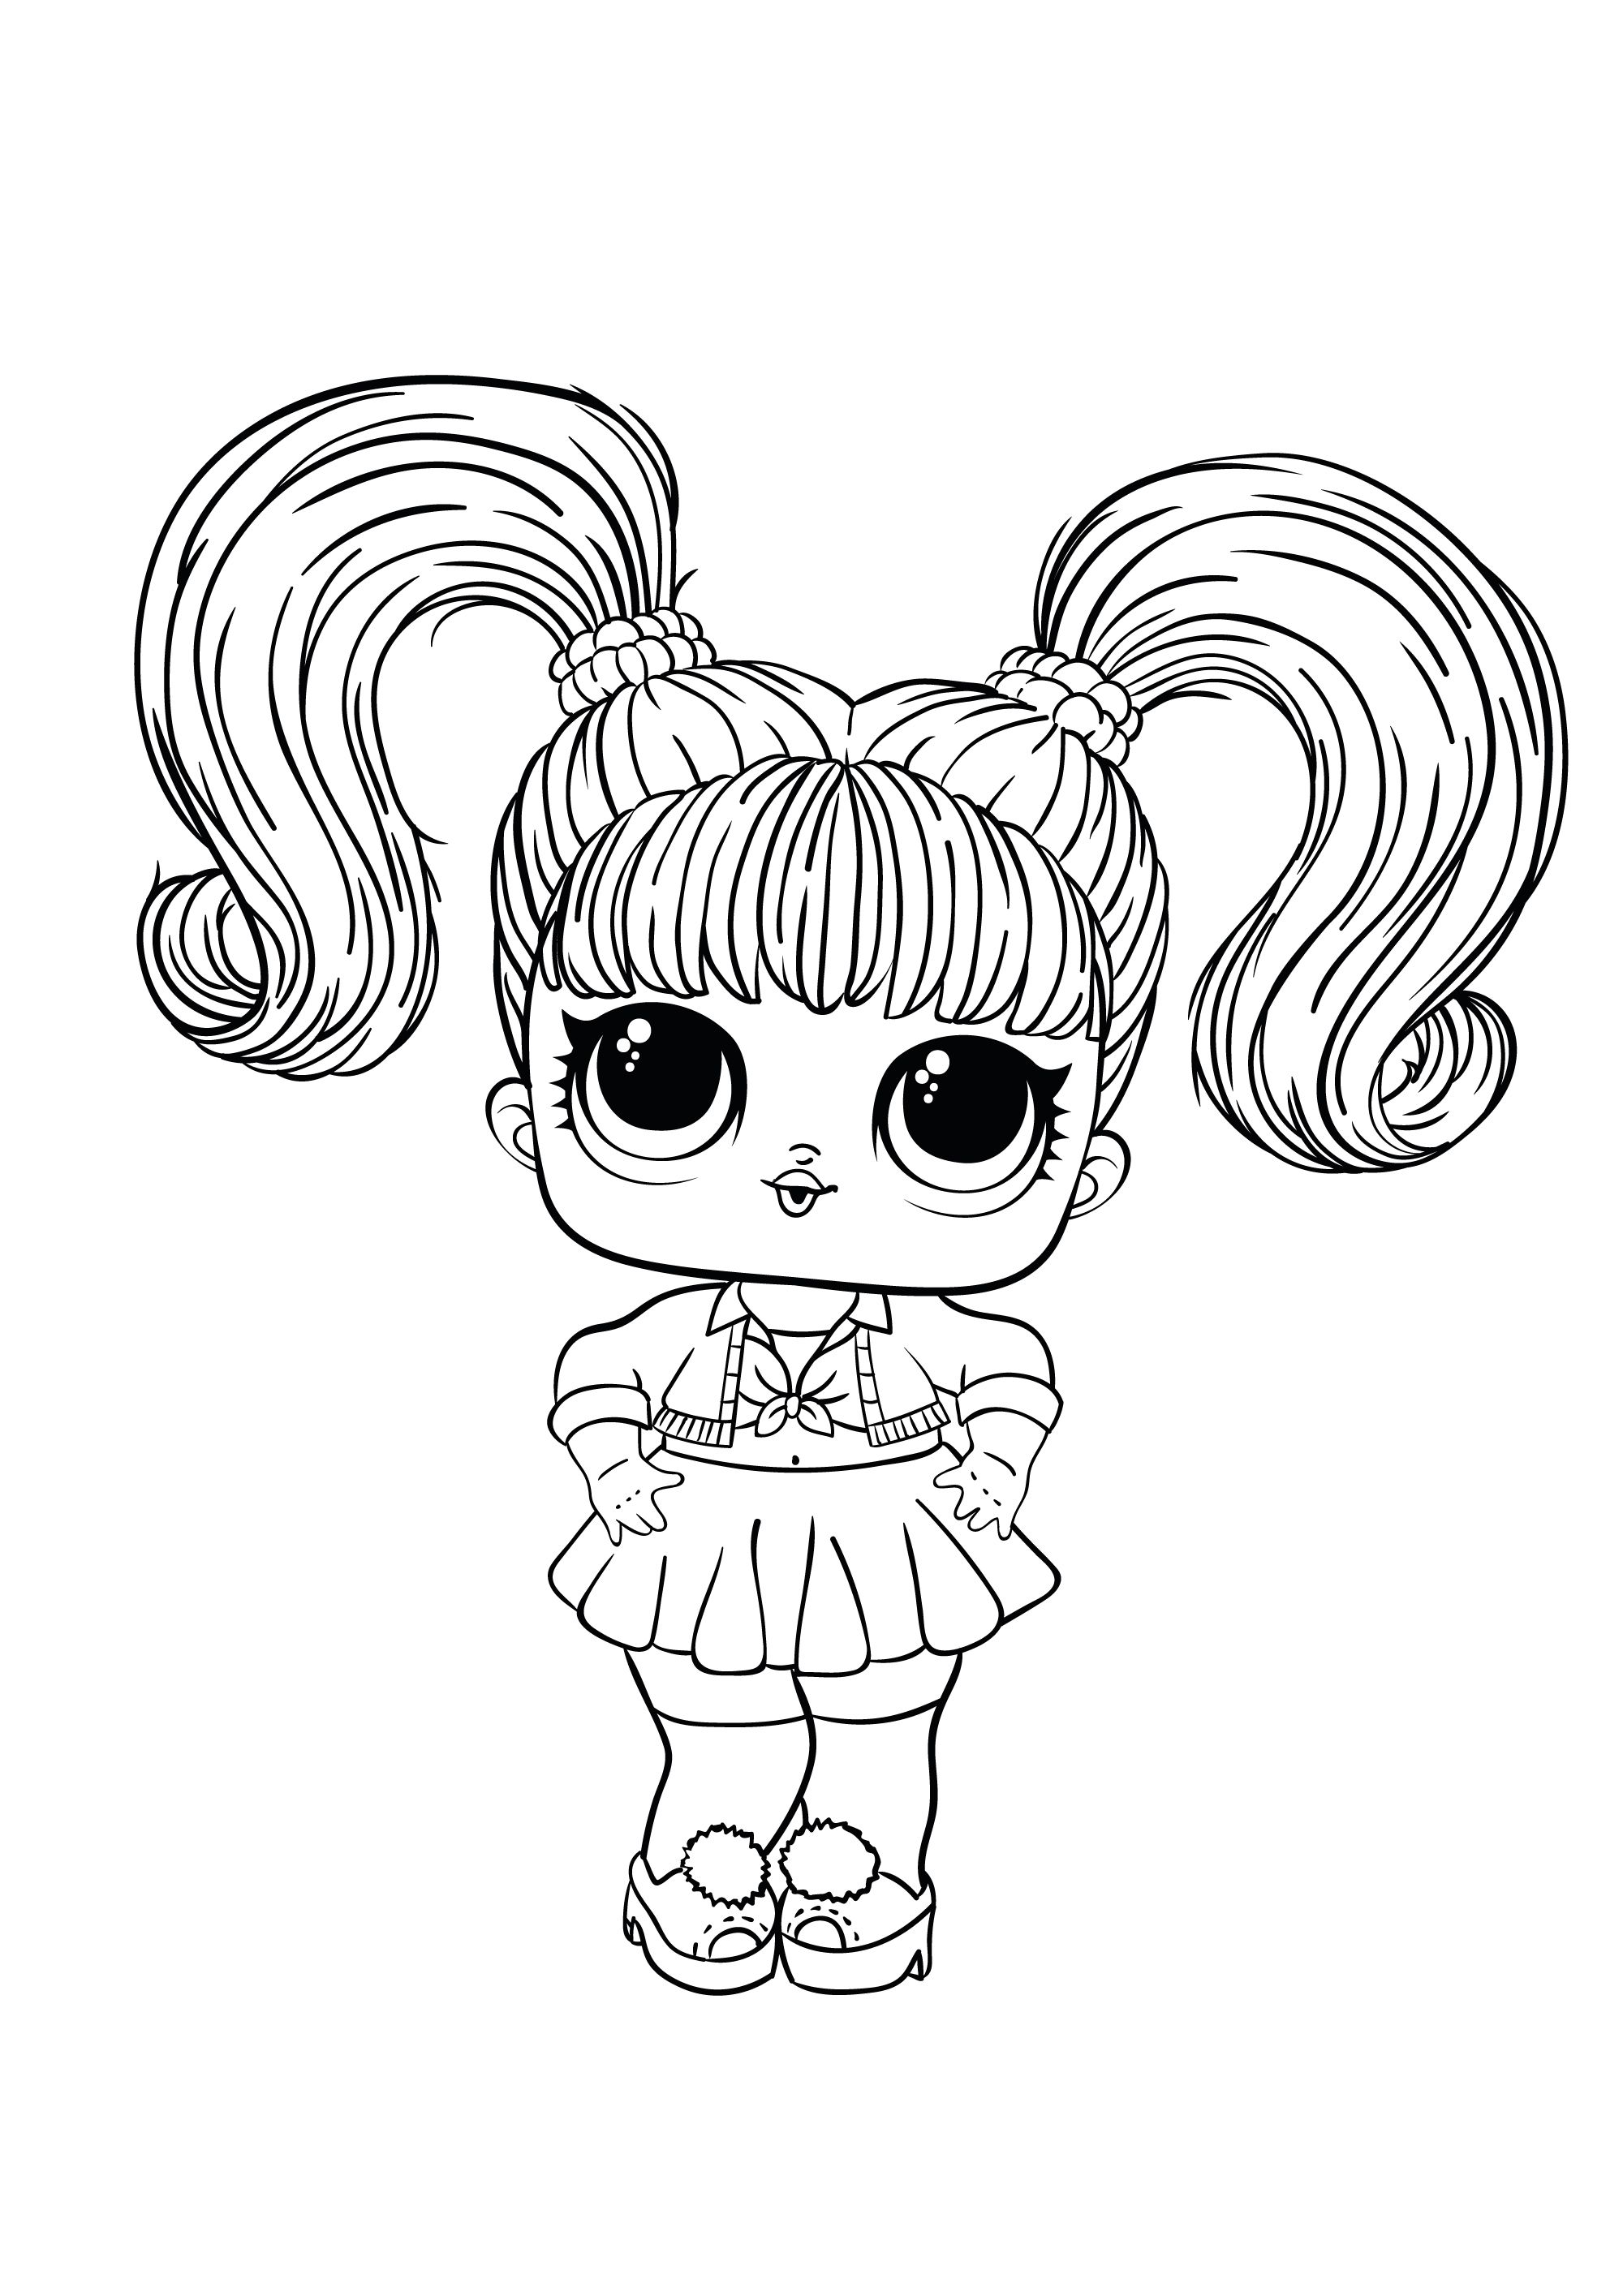 Coloring Pages Lol Surprise Hairgoals And Lol Surprise Boys Lolsdolls Cool Coloring Pages Coloring Pages Belle Coloring Pages